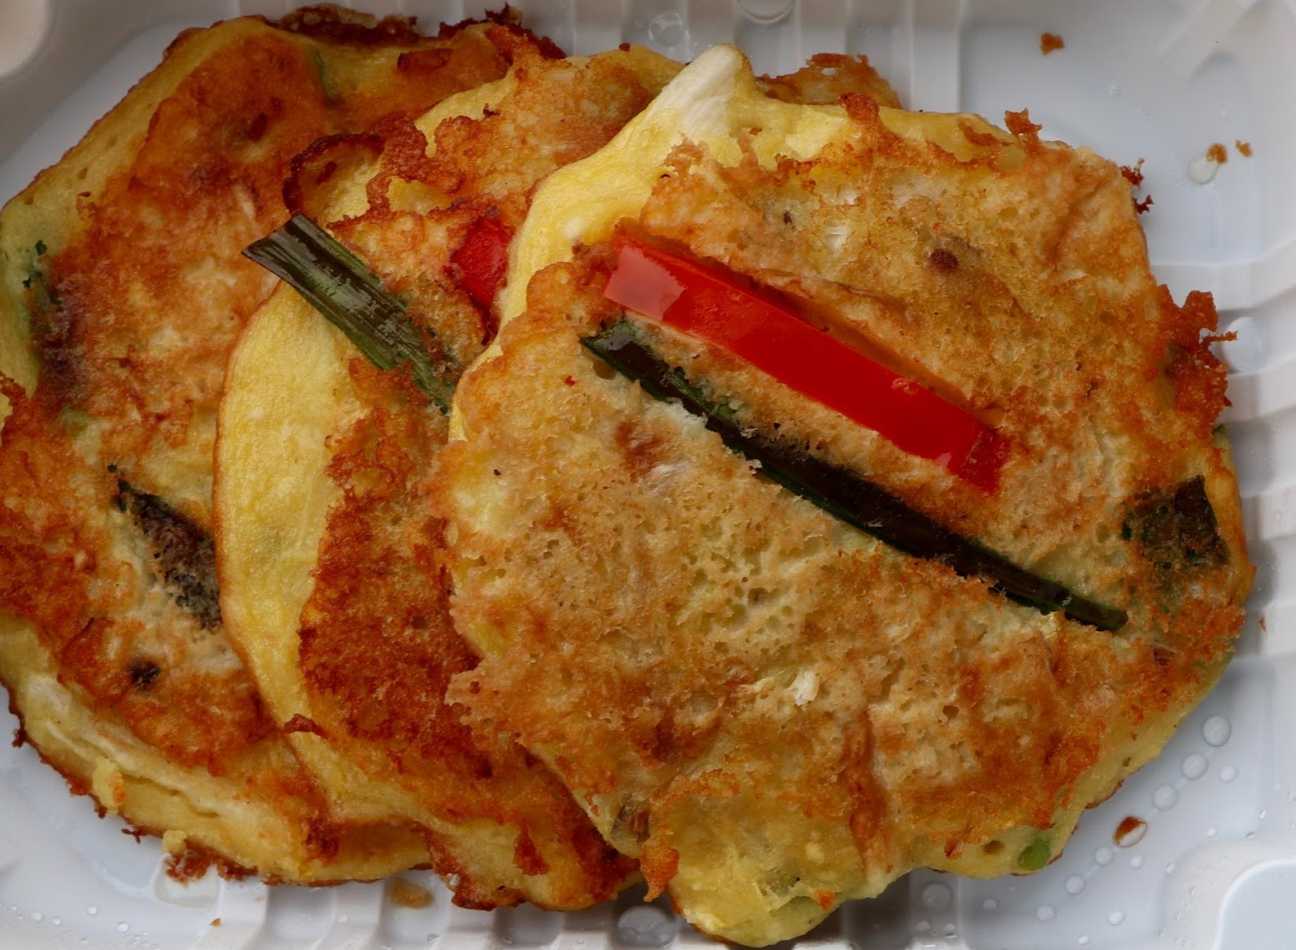 Bindaetteok is a pan fired mung bean pancake. Credit: Abigail Massar / The Foothill Dragon Press